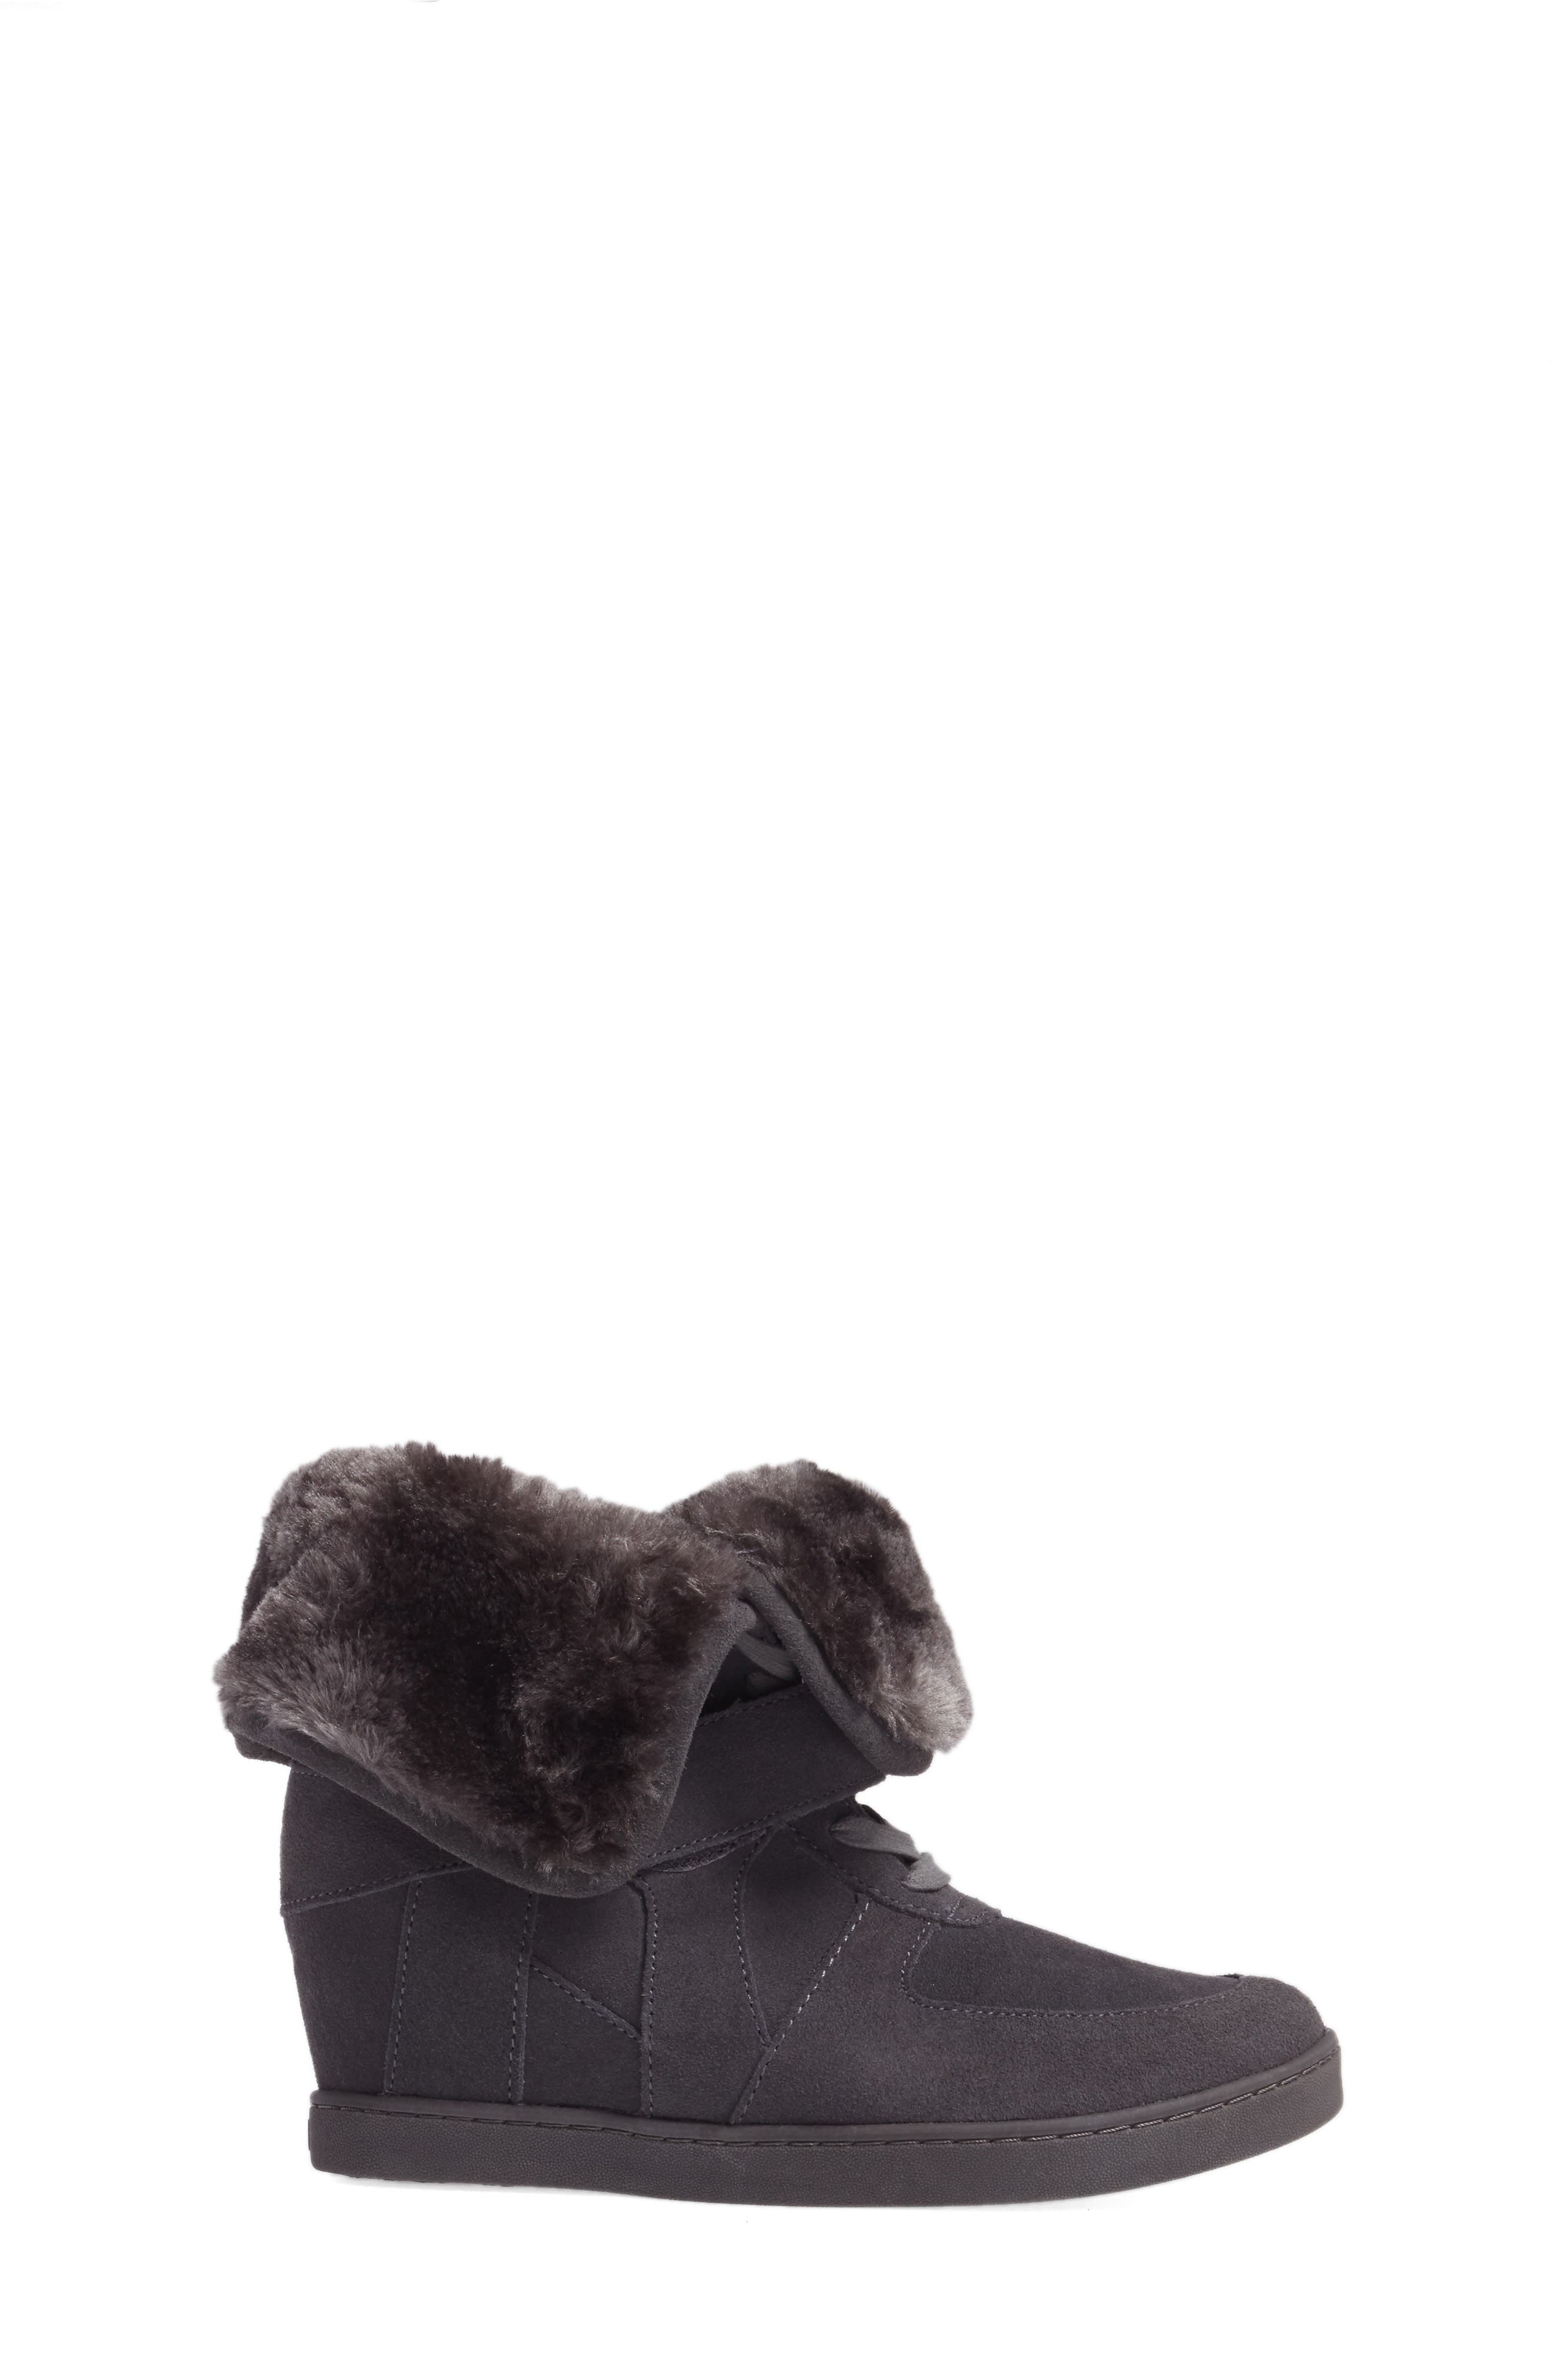 Boogie Beaver Faux Fur Cuffed Bootie,                             Alternate thumbnail 3, color,                             052